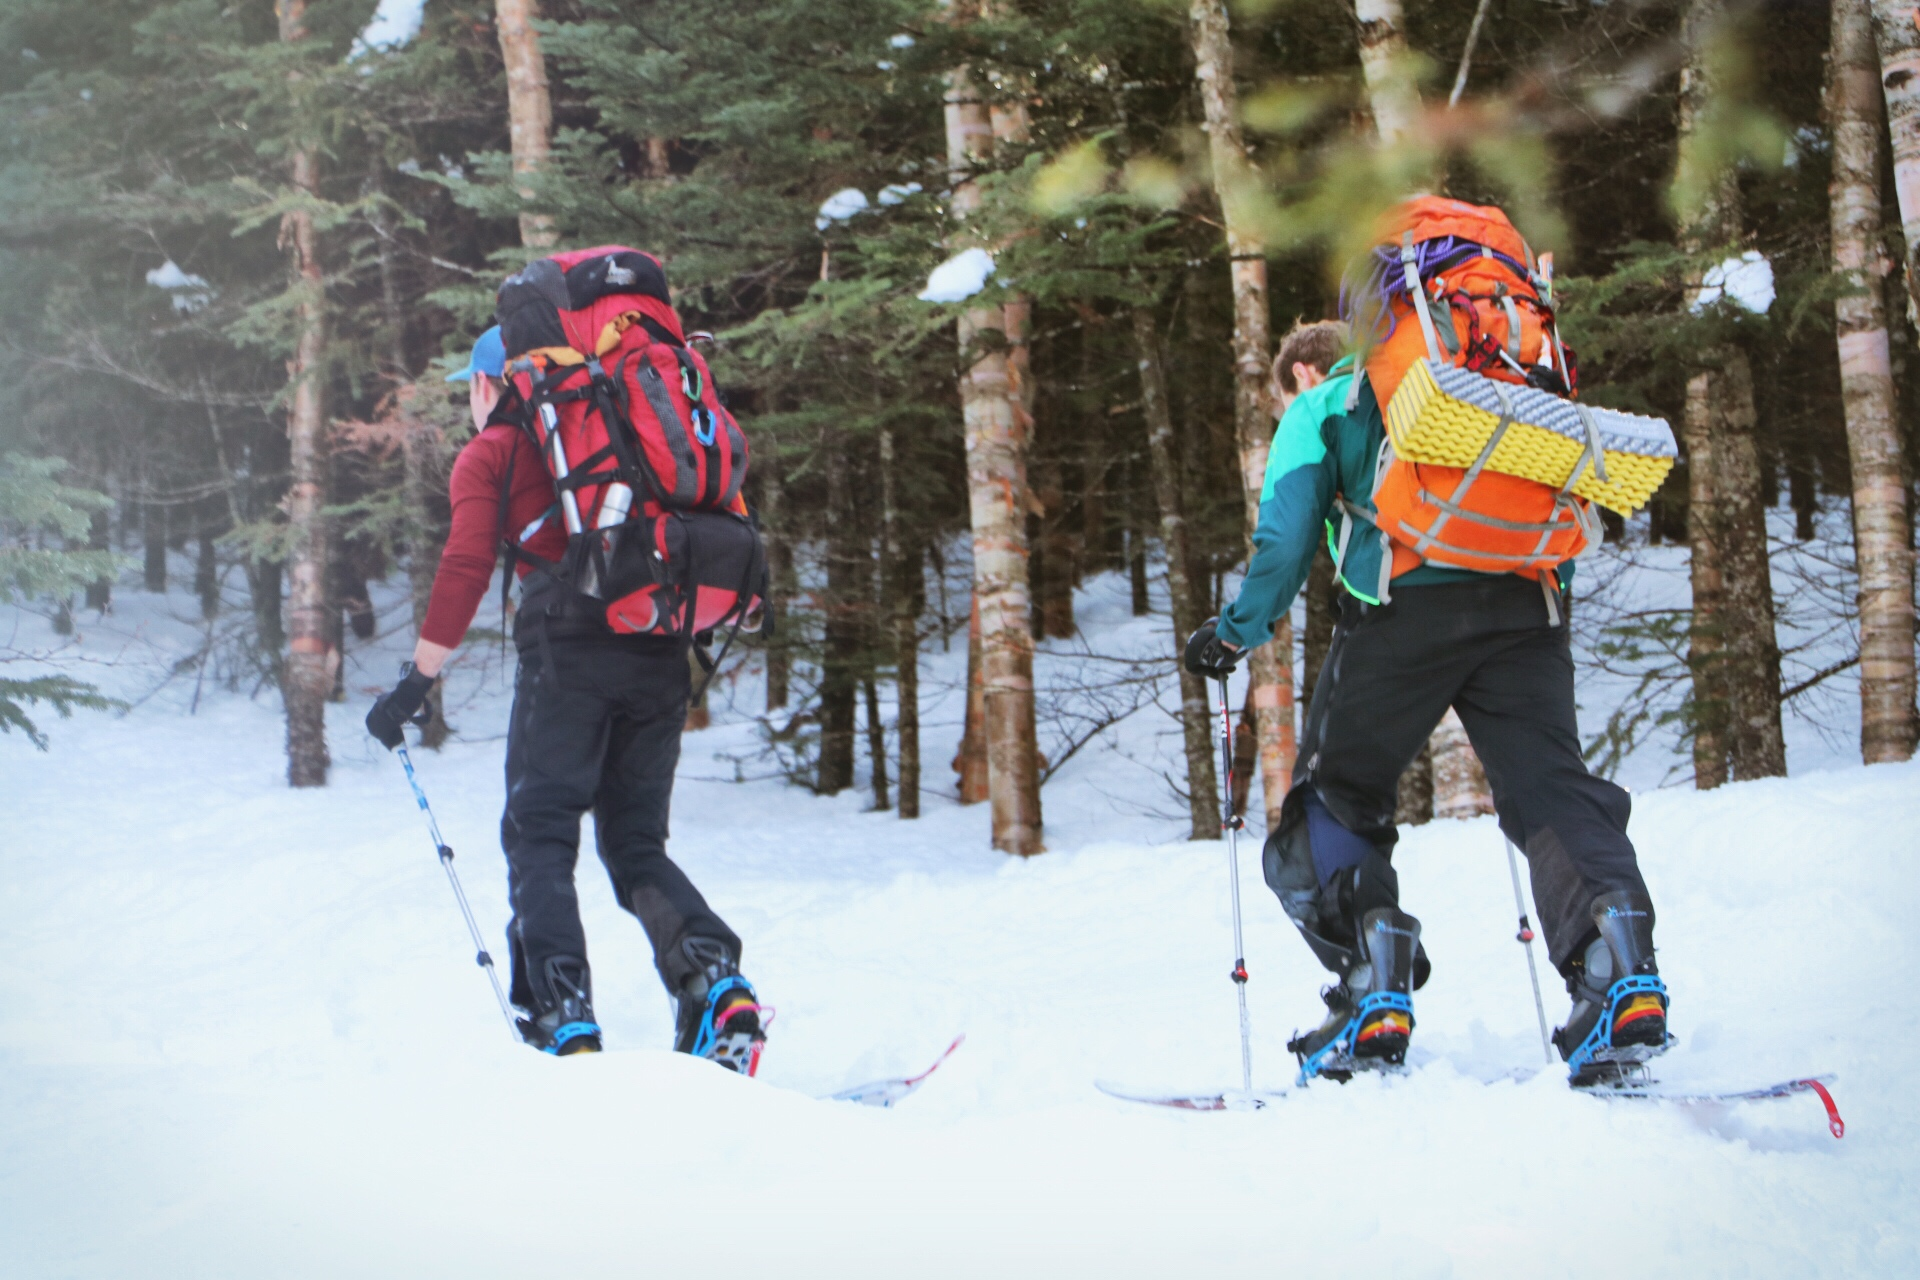 A Splitboard Expedition in the Adirondacks High Peaks